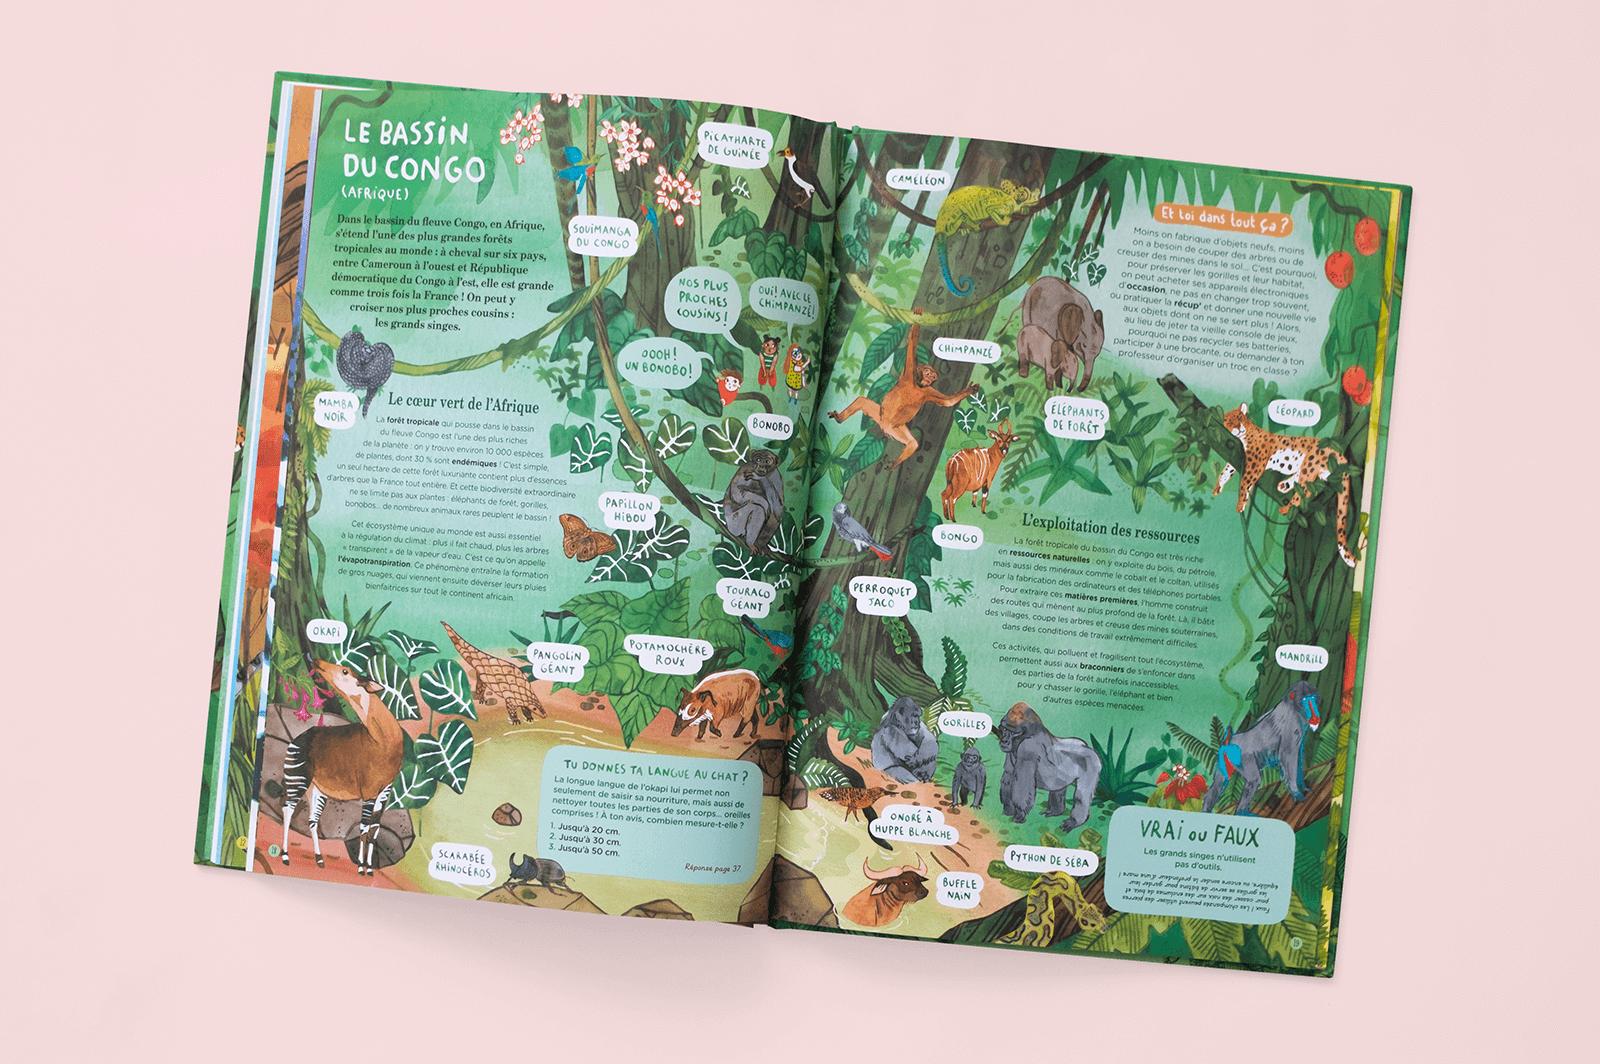 Kids' book open on an illustration of the Congo rainforest